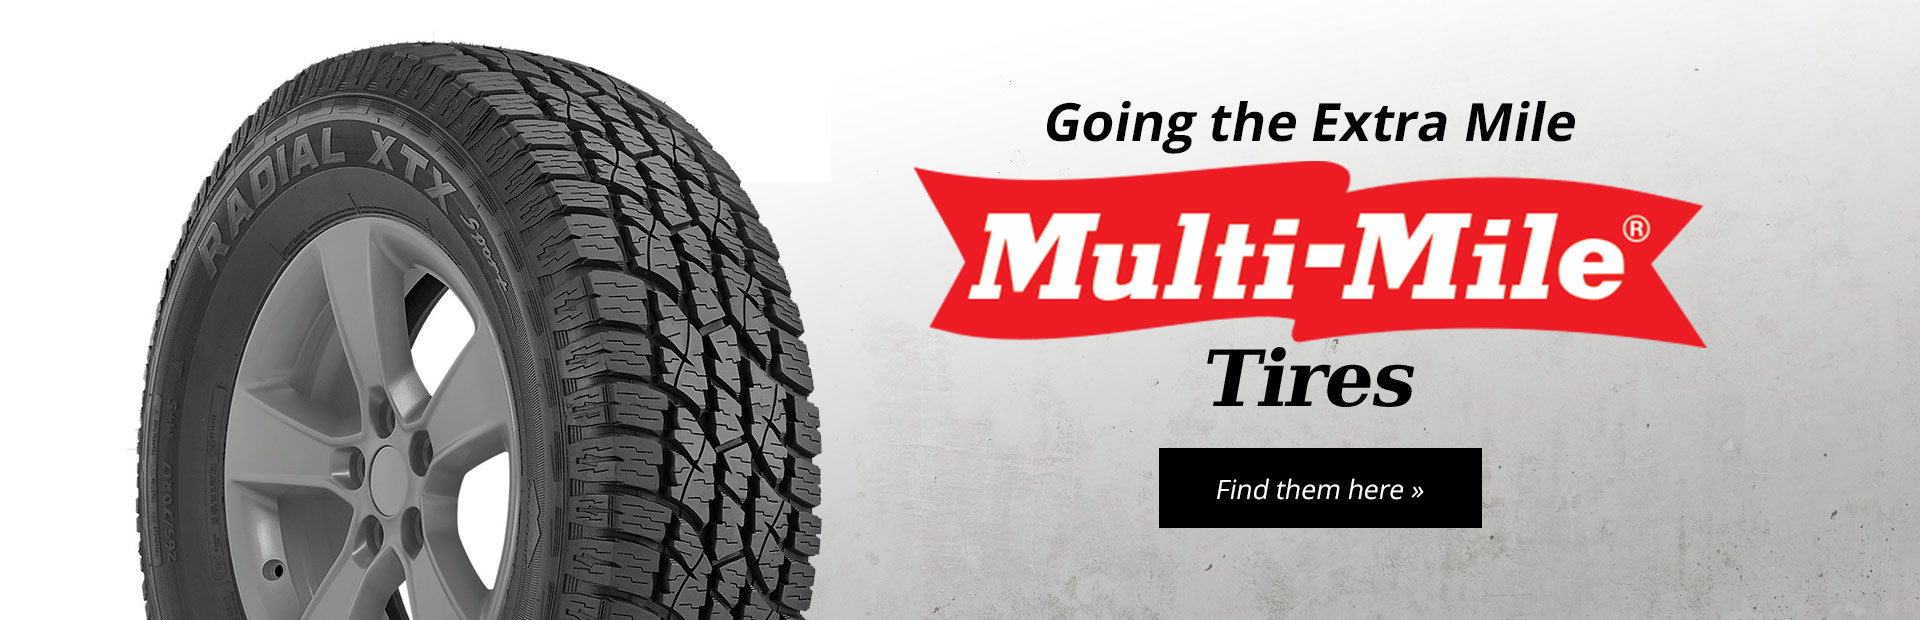 Click here to view Multi-Mile tires.